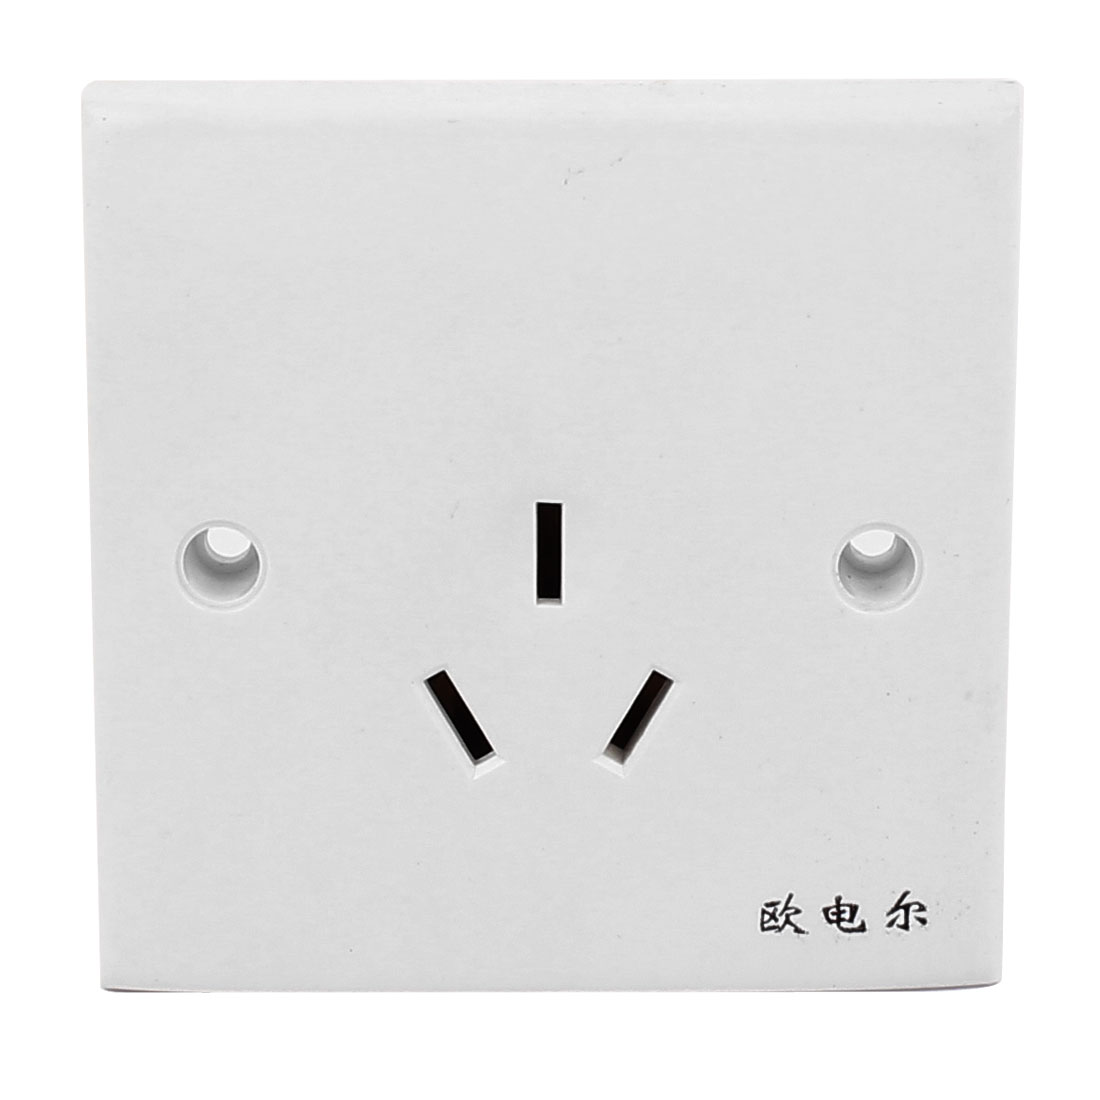 AC 250V 16A AU Socket Electric Power Wall Outlet Plate Panel 86mm x 86mm White